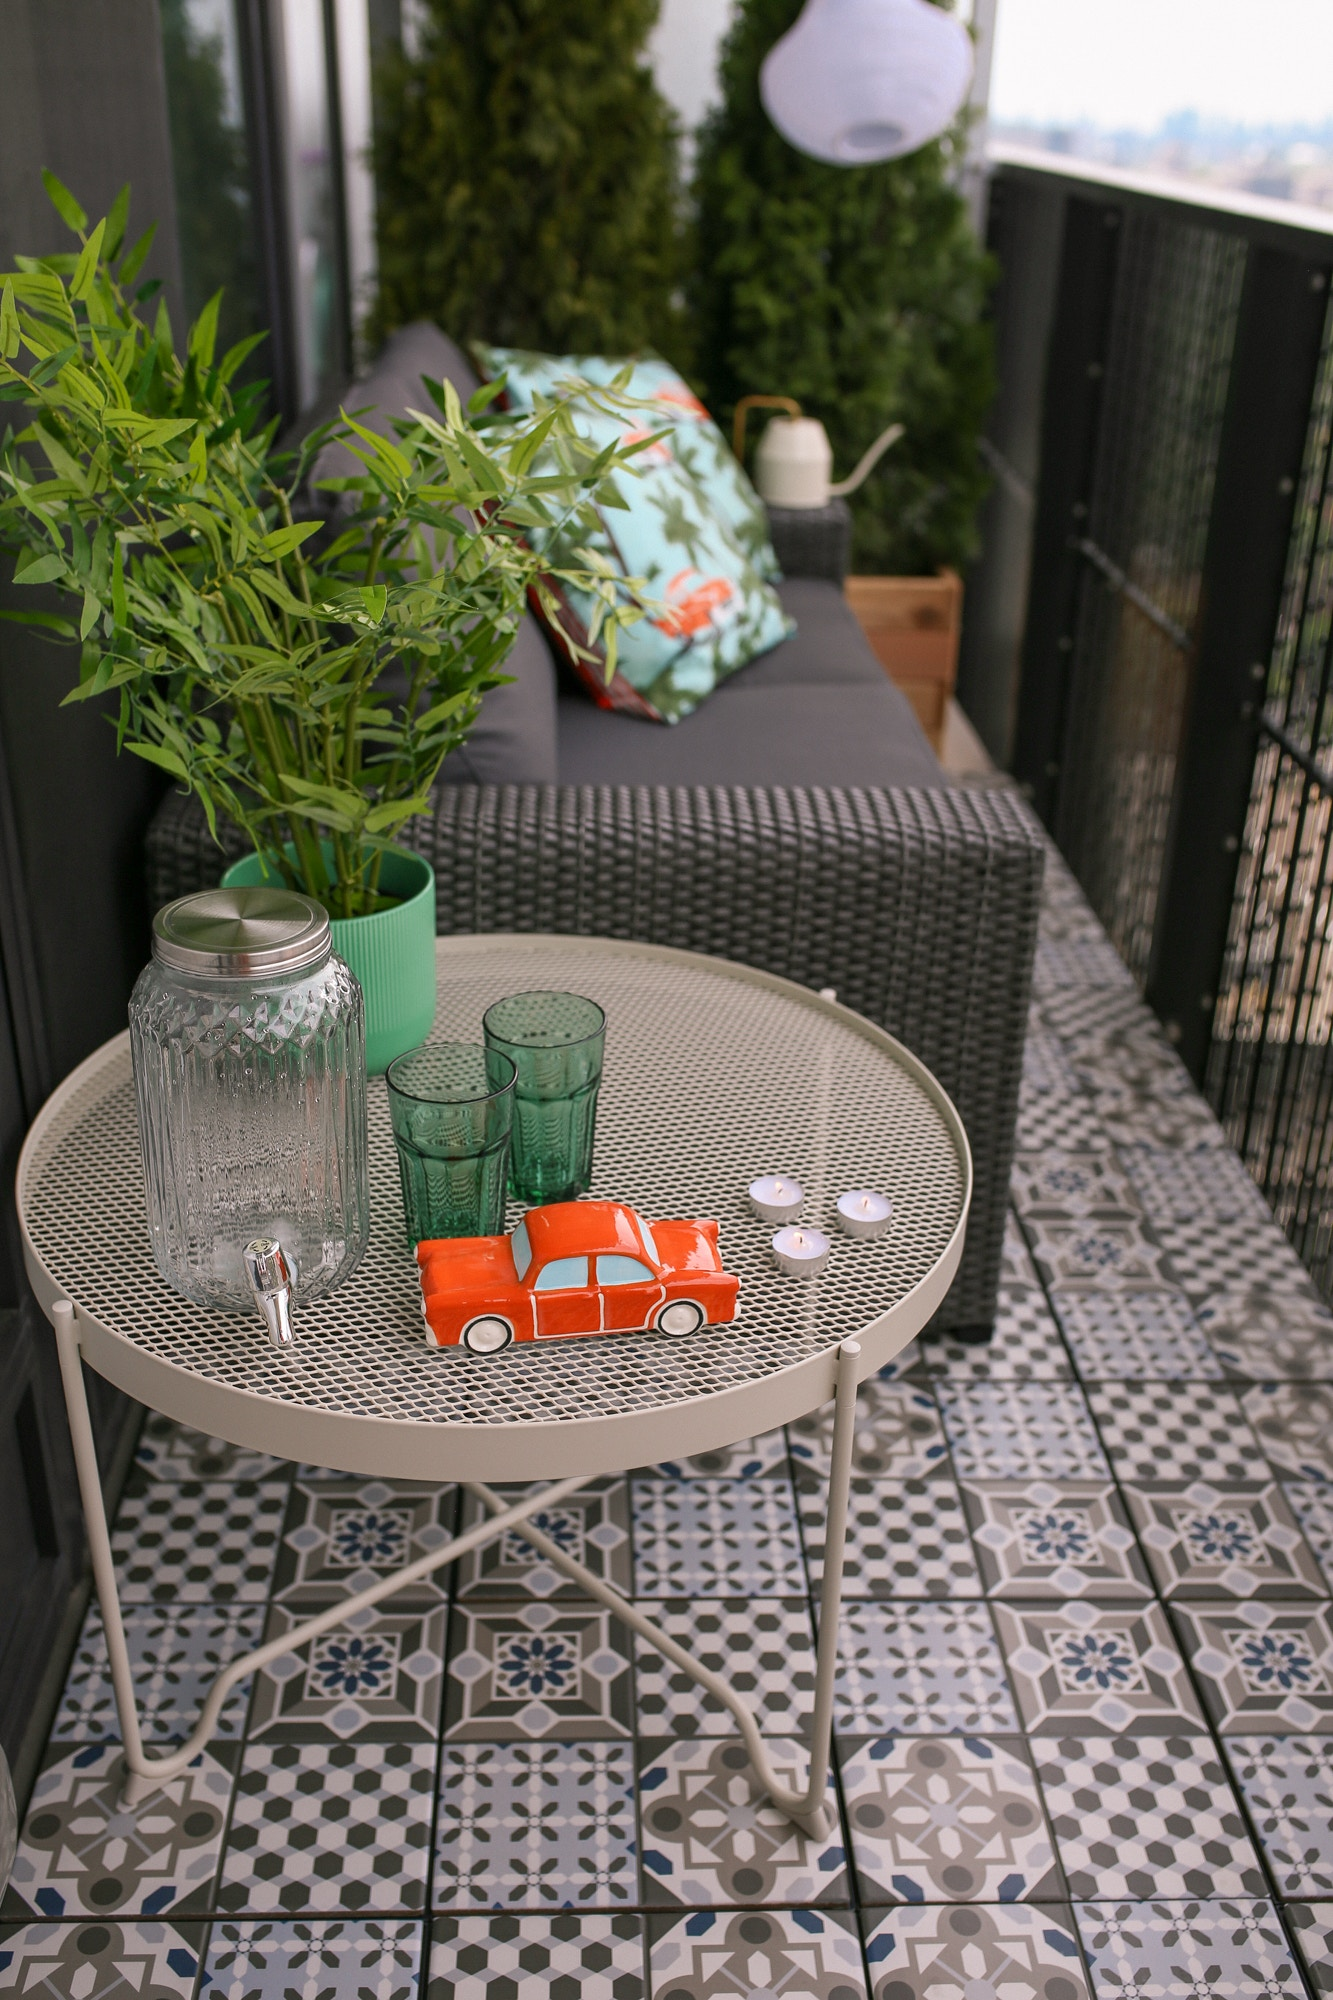 IKEA Patio Furniture Review - the best products for making your balcony a chic outdoor space. The Krokholmen metal coffee table from IKEA is very practical, sturdy and perfect for entertaining.